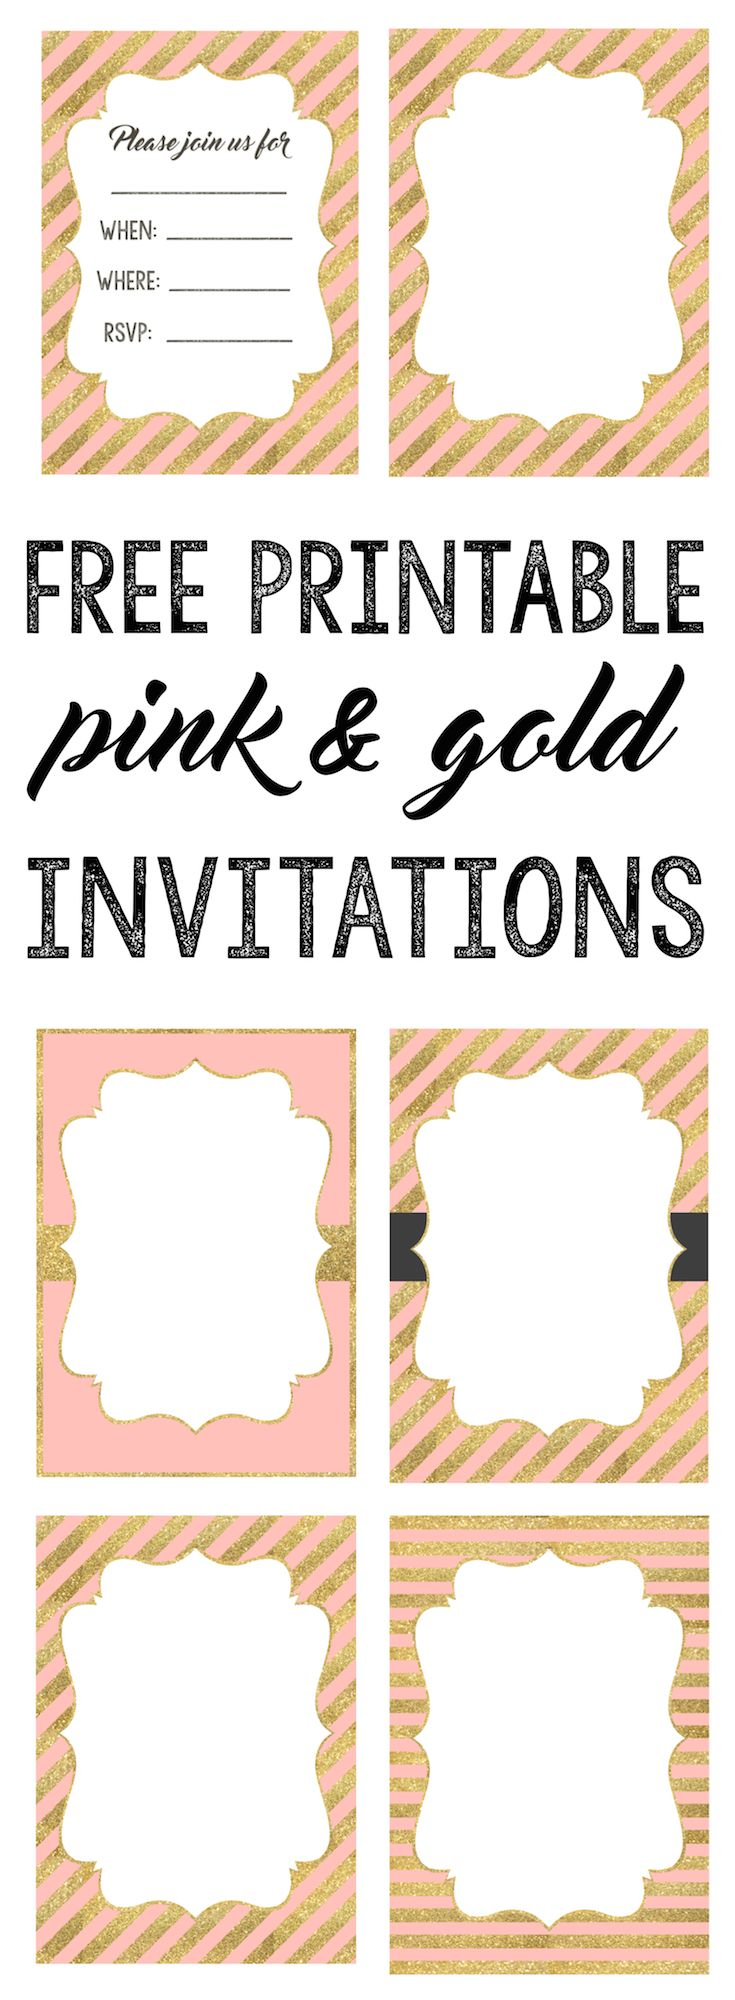 Pink And Gold Invitations Free Printable Select A Invitation Personalize It For Your Baby Shower Birthday Party Bridal